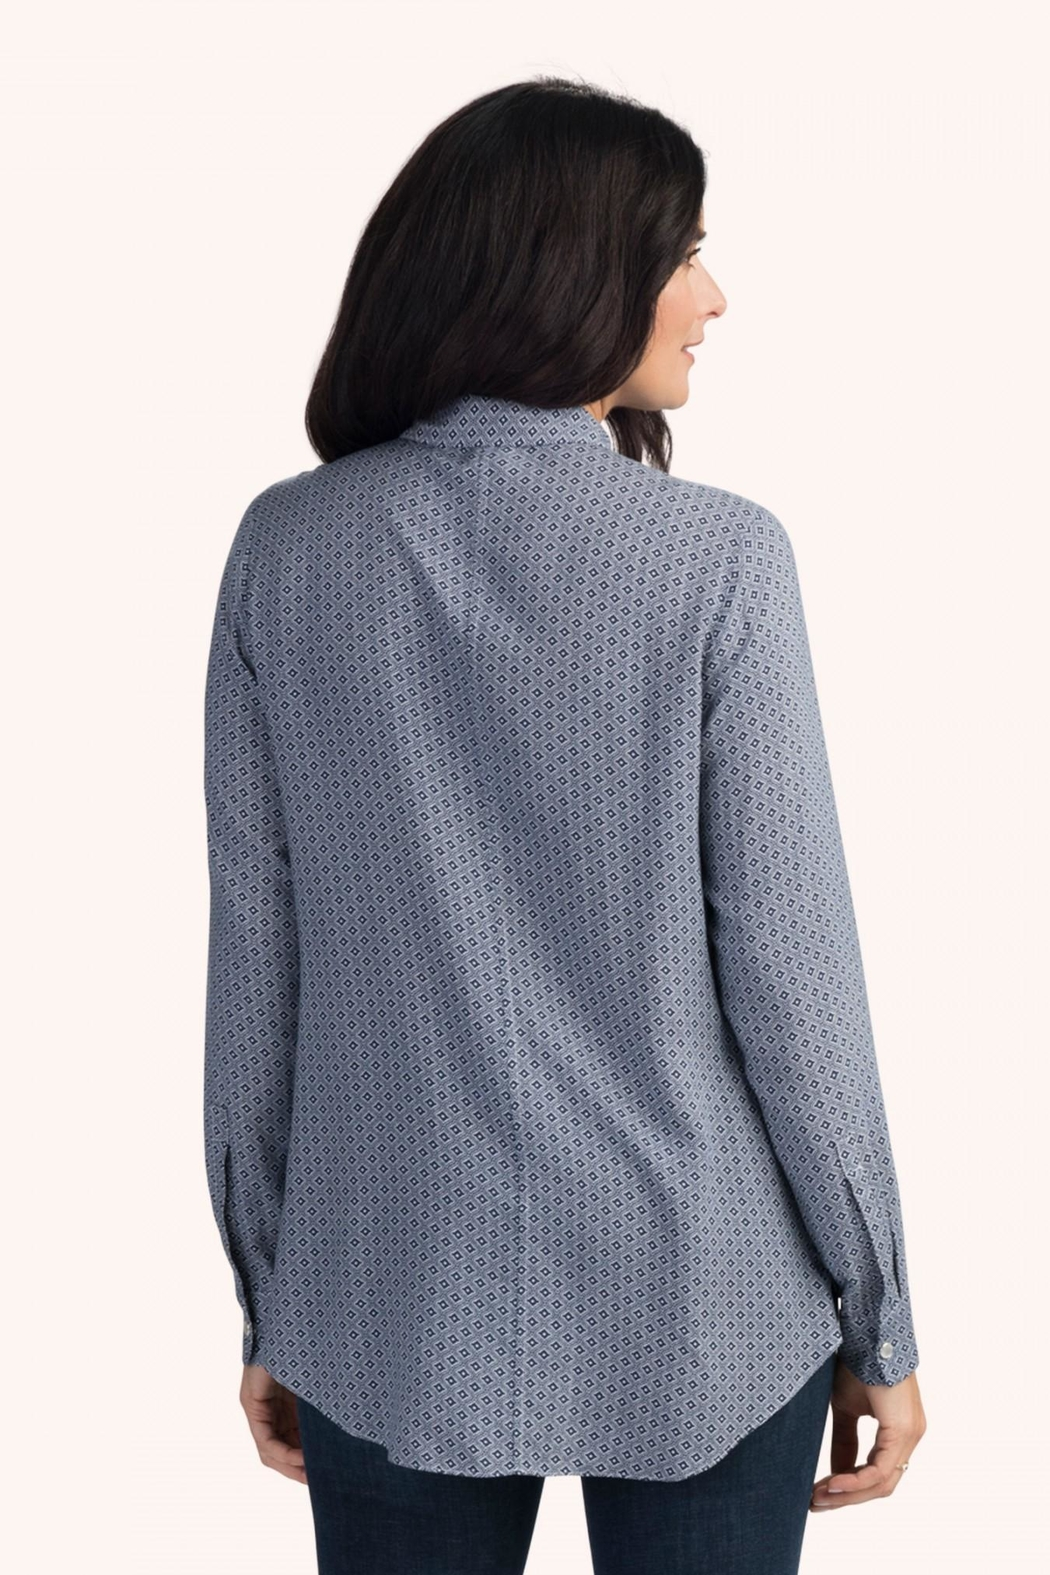 Hatley Navy Medallions Blouse - Front Full Image